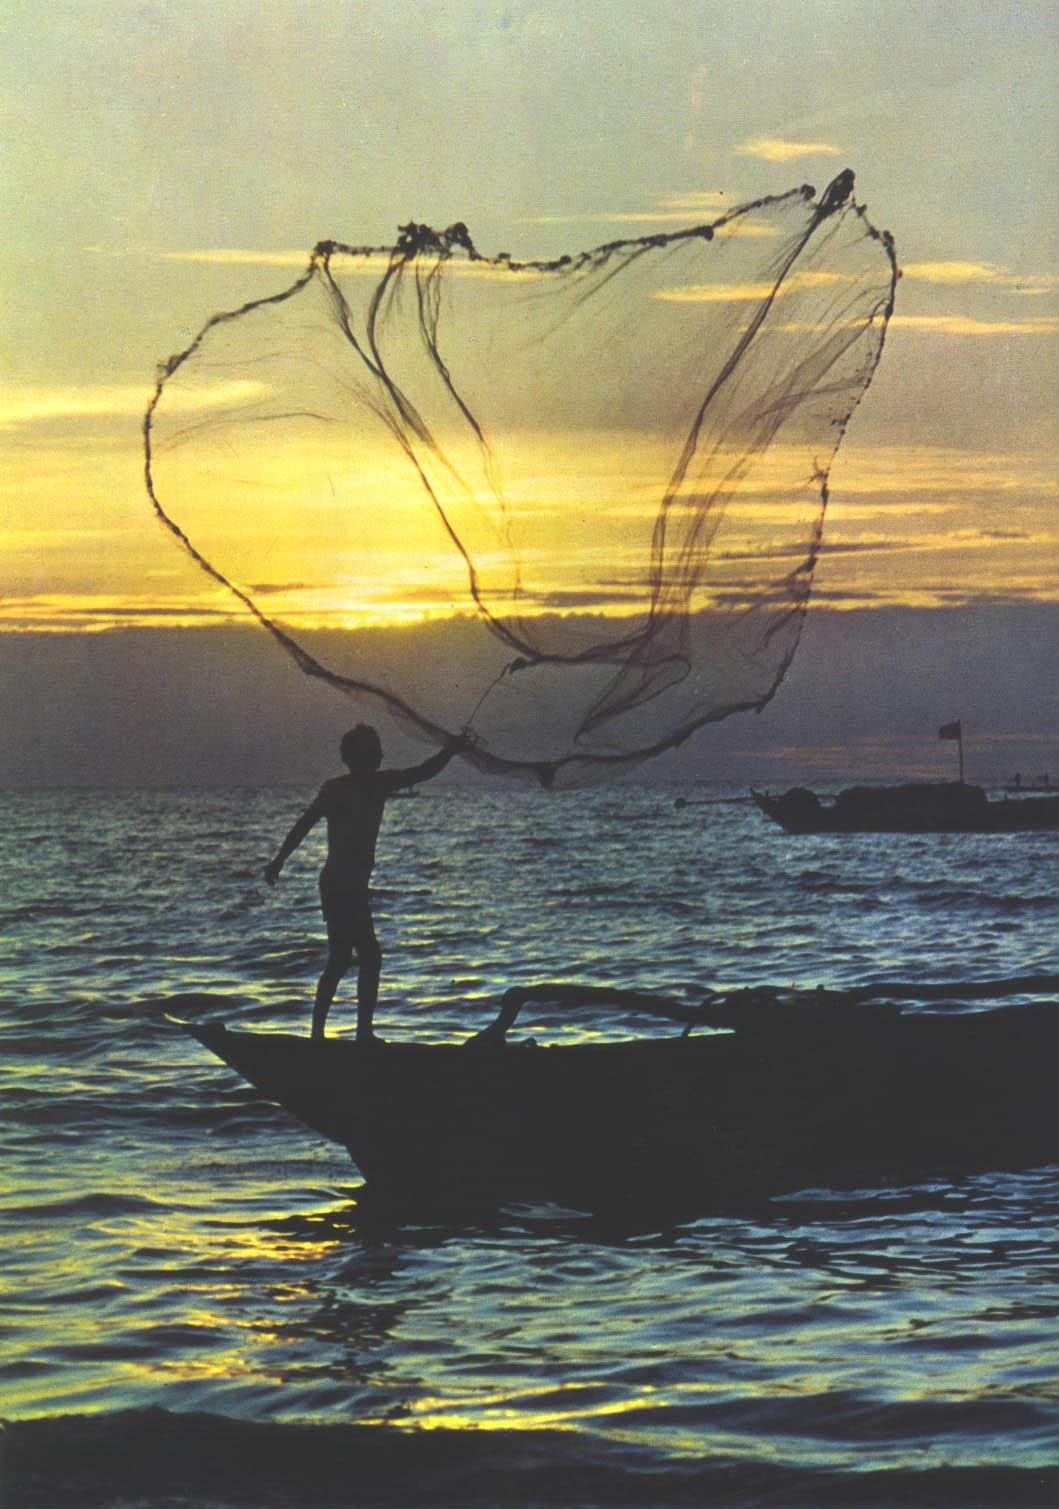 Import Export: A Fishing Net